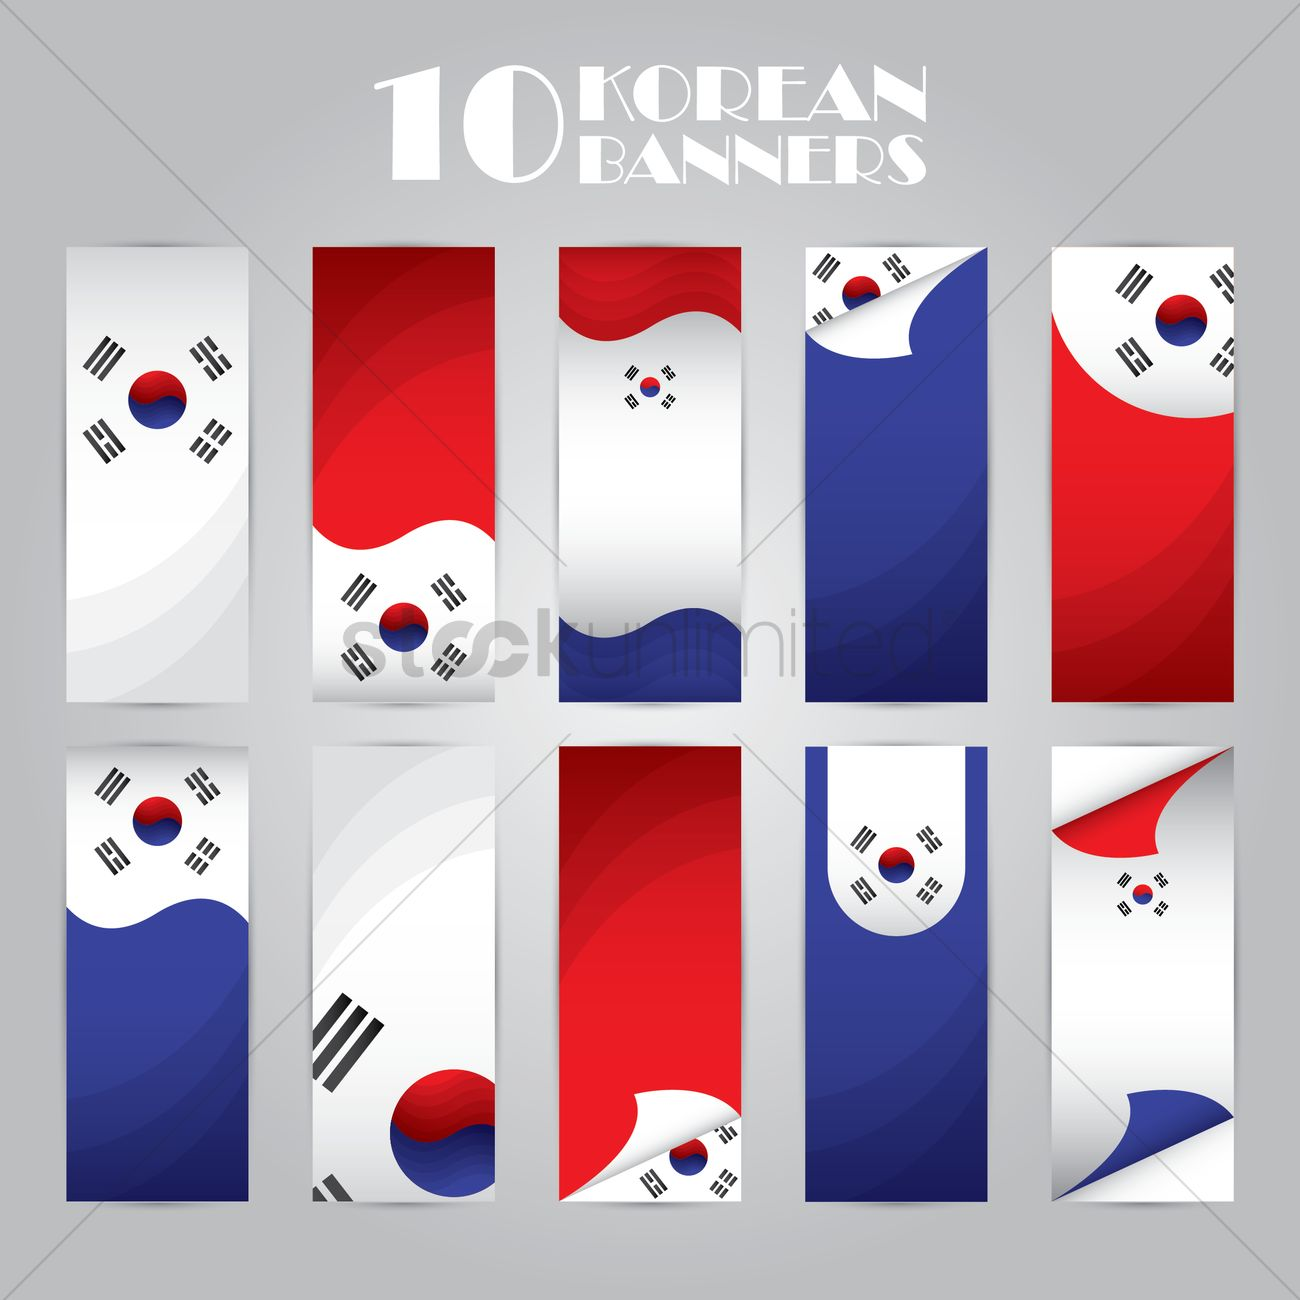 Creative Artistic Creativity Design Designs South Korea South Korean